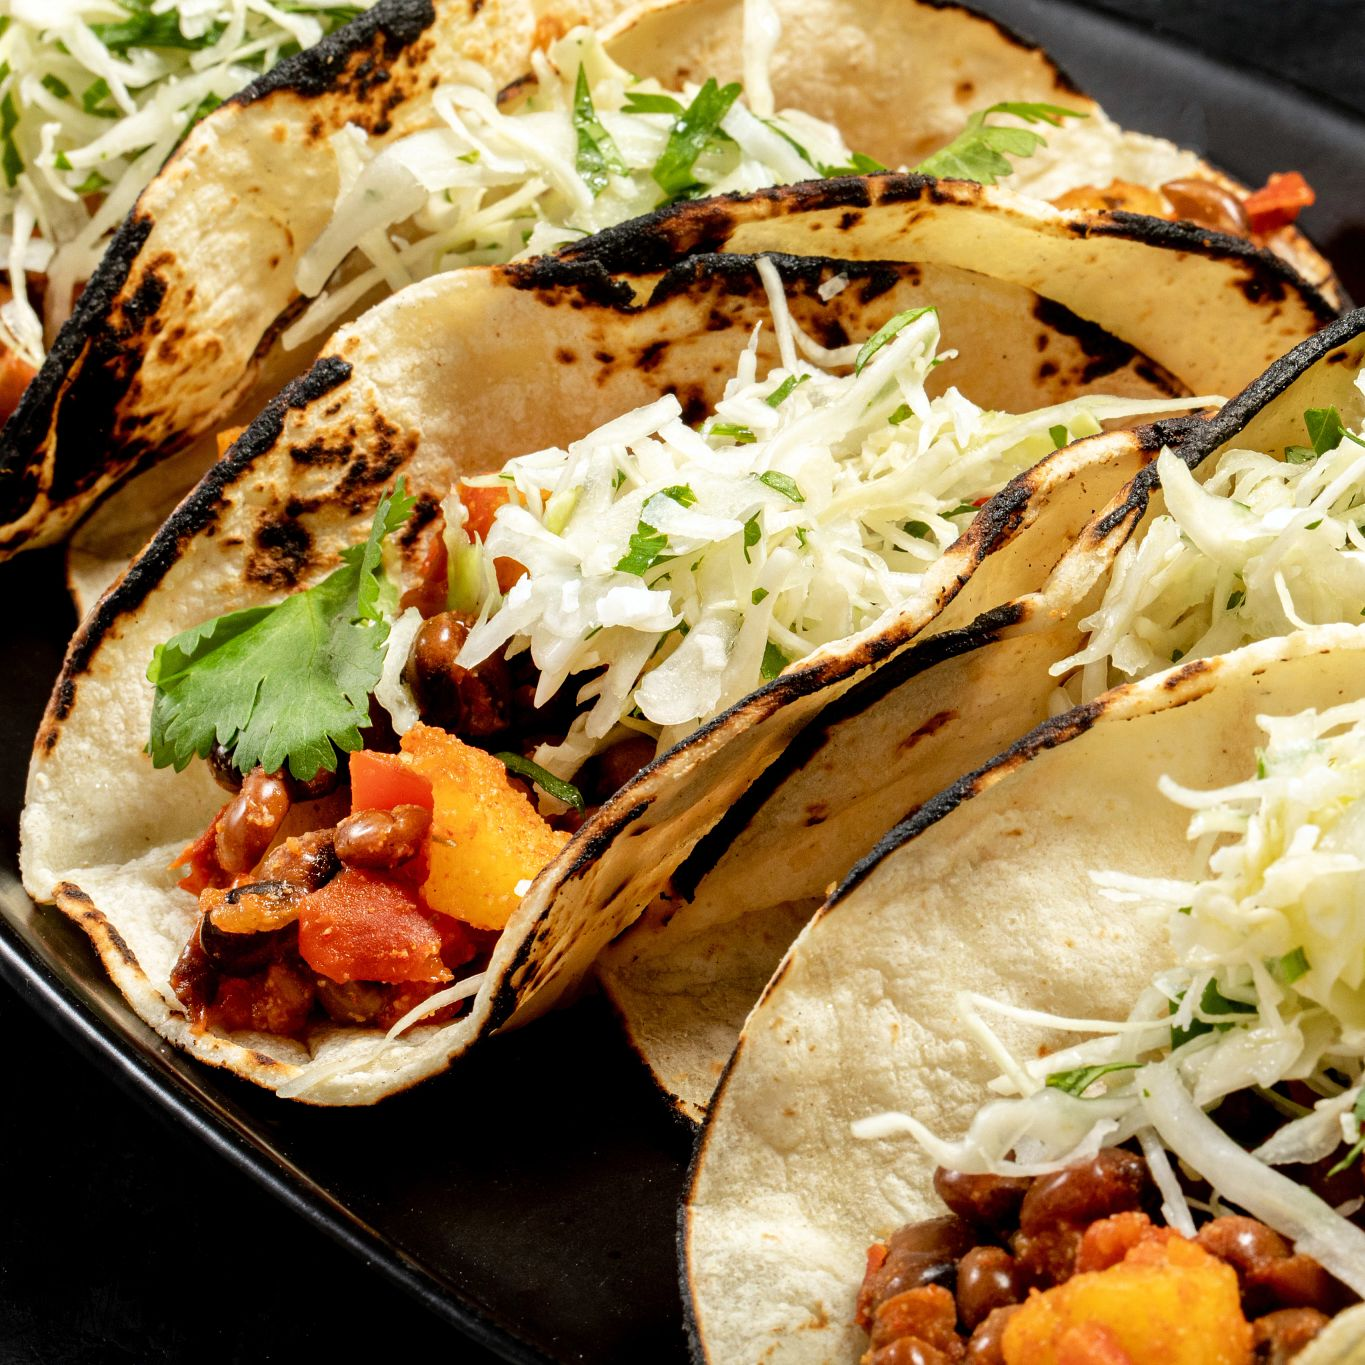 Pigeon Pea Tacos al Pastor with Coconut Lime Slaw